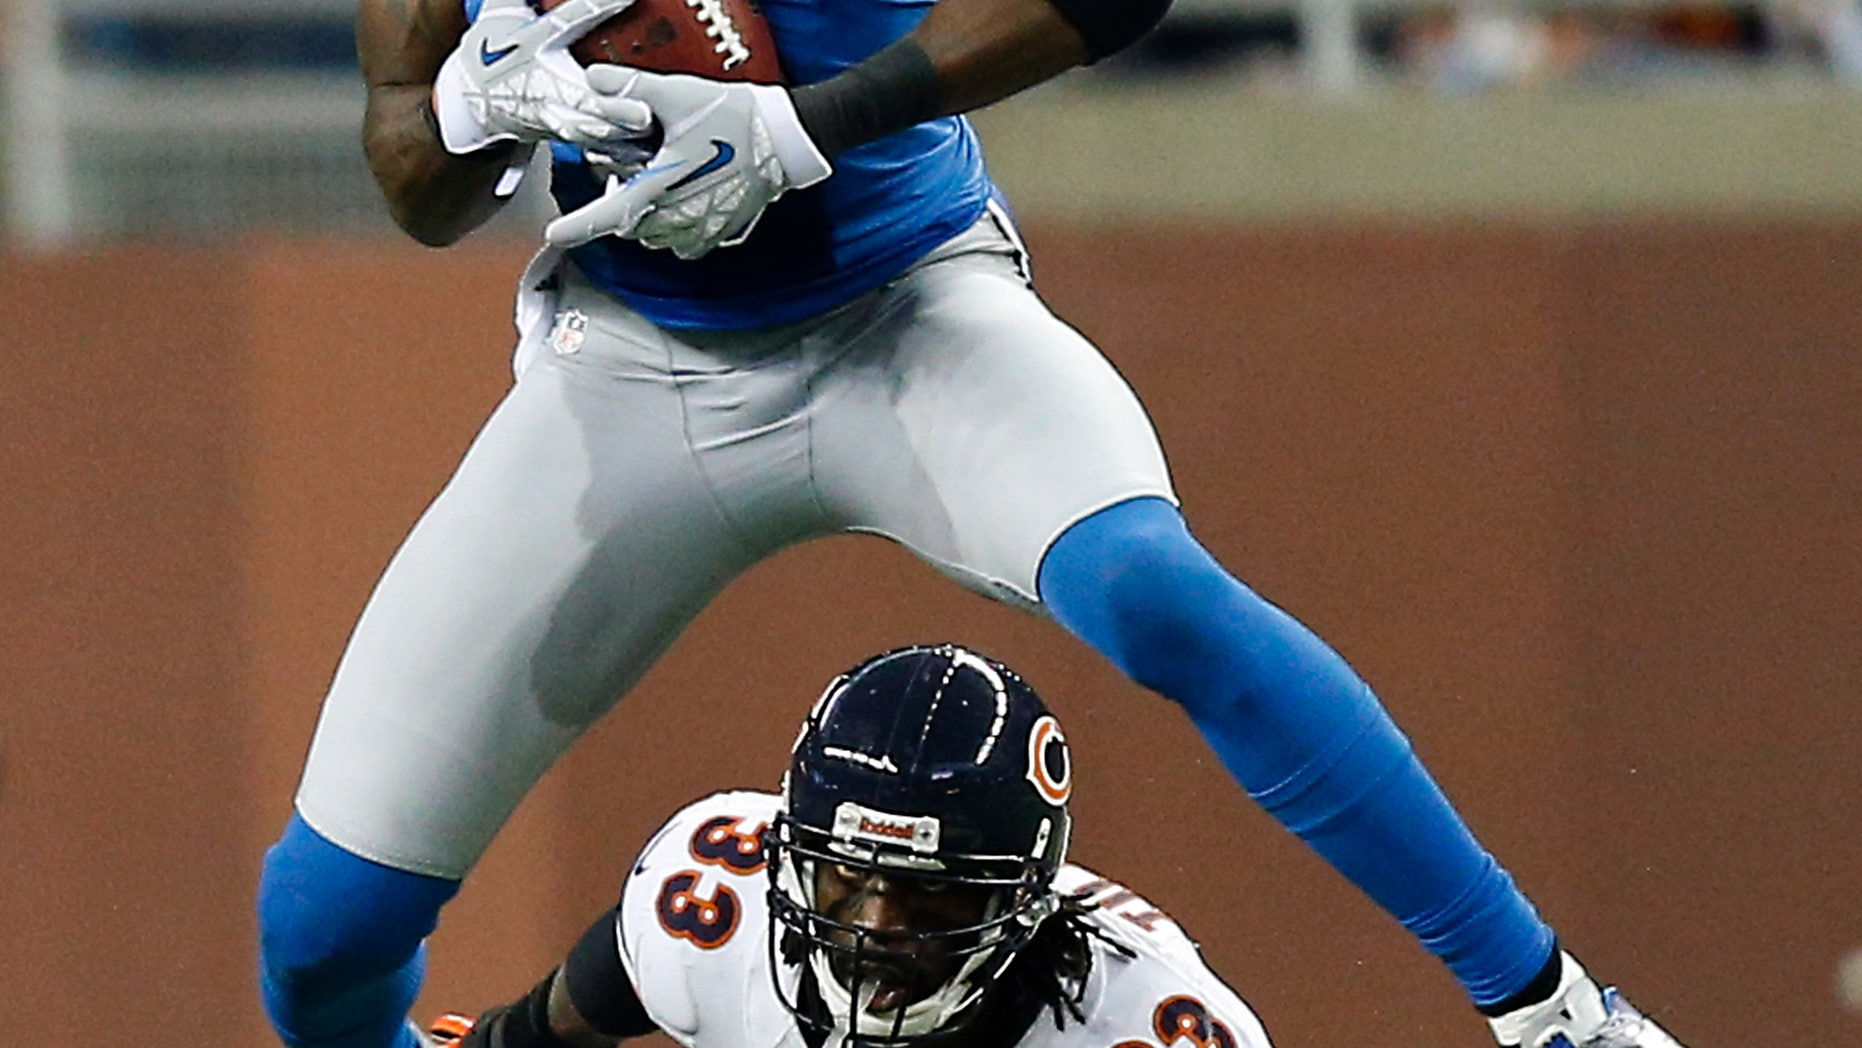 Detroit Lions wide receiver Calvin Johnson (81) gains 18-yards on a pass reception under pressure from Chicago Bears cornerback Charles Tillman (33) during the third quarter of an NFL football game at Ford Field in Detroit, Sunday, Dec. 30, 2012. (AP Photo/Rick Osentoski)